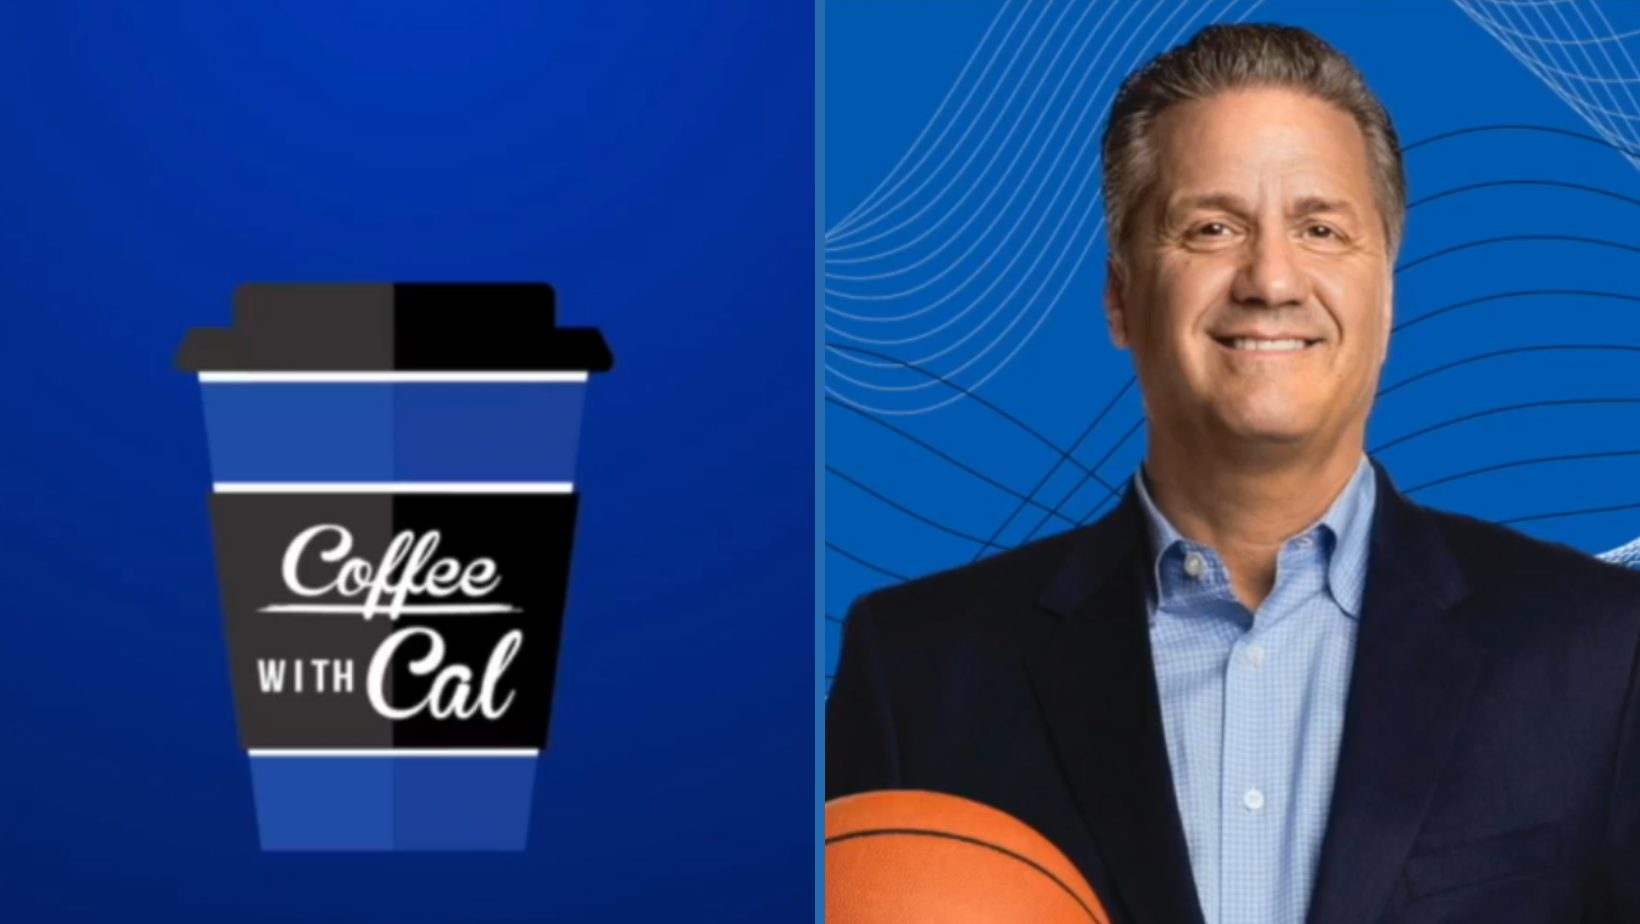 The Calipari Foundation donates $75,000 to Blessings in a Backpack